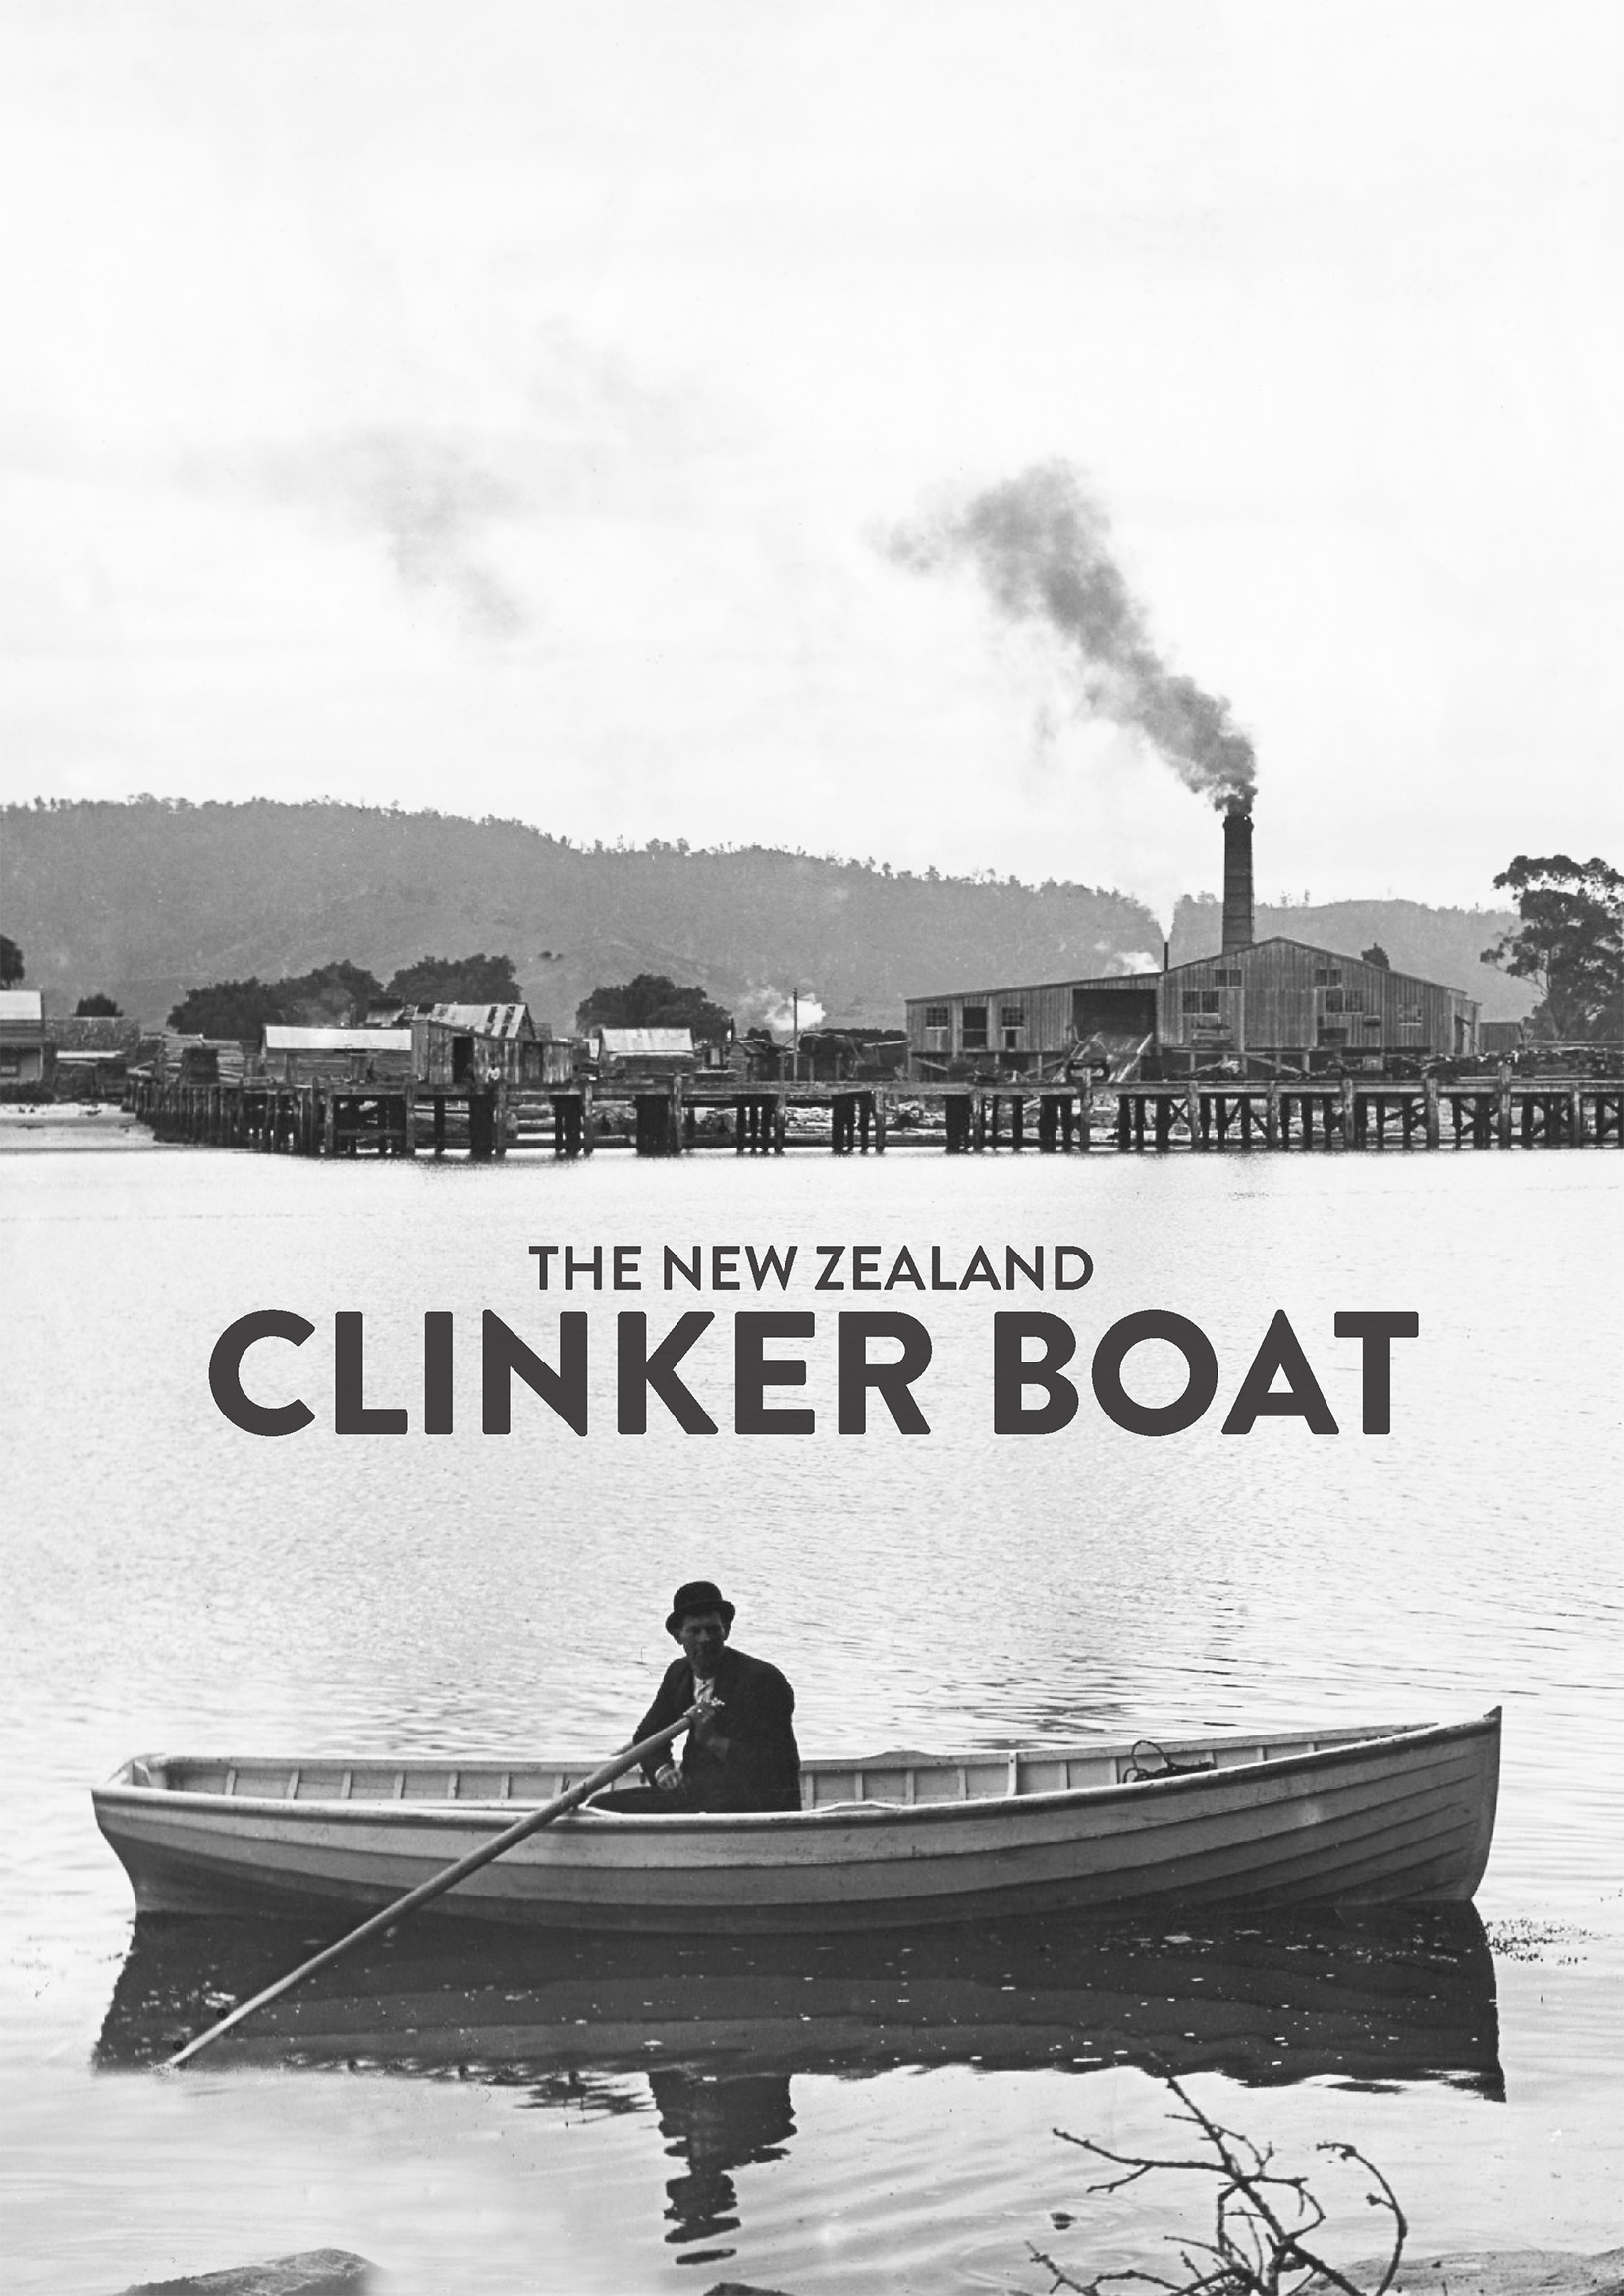 The New Zealand Clinker Boat - A celebration of the New Zealand Clinker Boat from its early history, construction techniques through to information on boat builders, designs and yacht classes.This booklet presents the history on the early beginnings of clinker design and boat building in New Zealand, work vessels, recreational vessels and yacht racing classes.From clinker tenders and an array of clinker centre-boarders such as the Frostbite, Silver Fern, International 14 and M Class through to St Ayle Rowing Skiffs, this book presents a comprehensive history of the designs, boat builders, illustrated plans and stories behind many New Zealand clinker boats.Currently Out of Stock